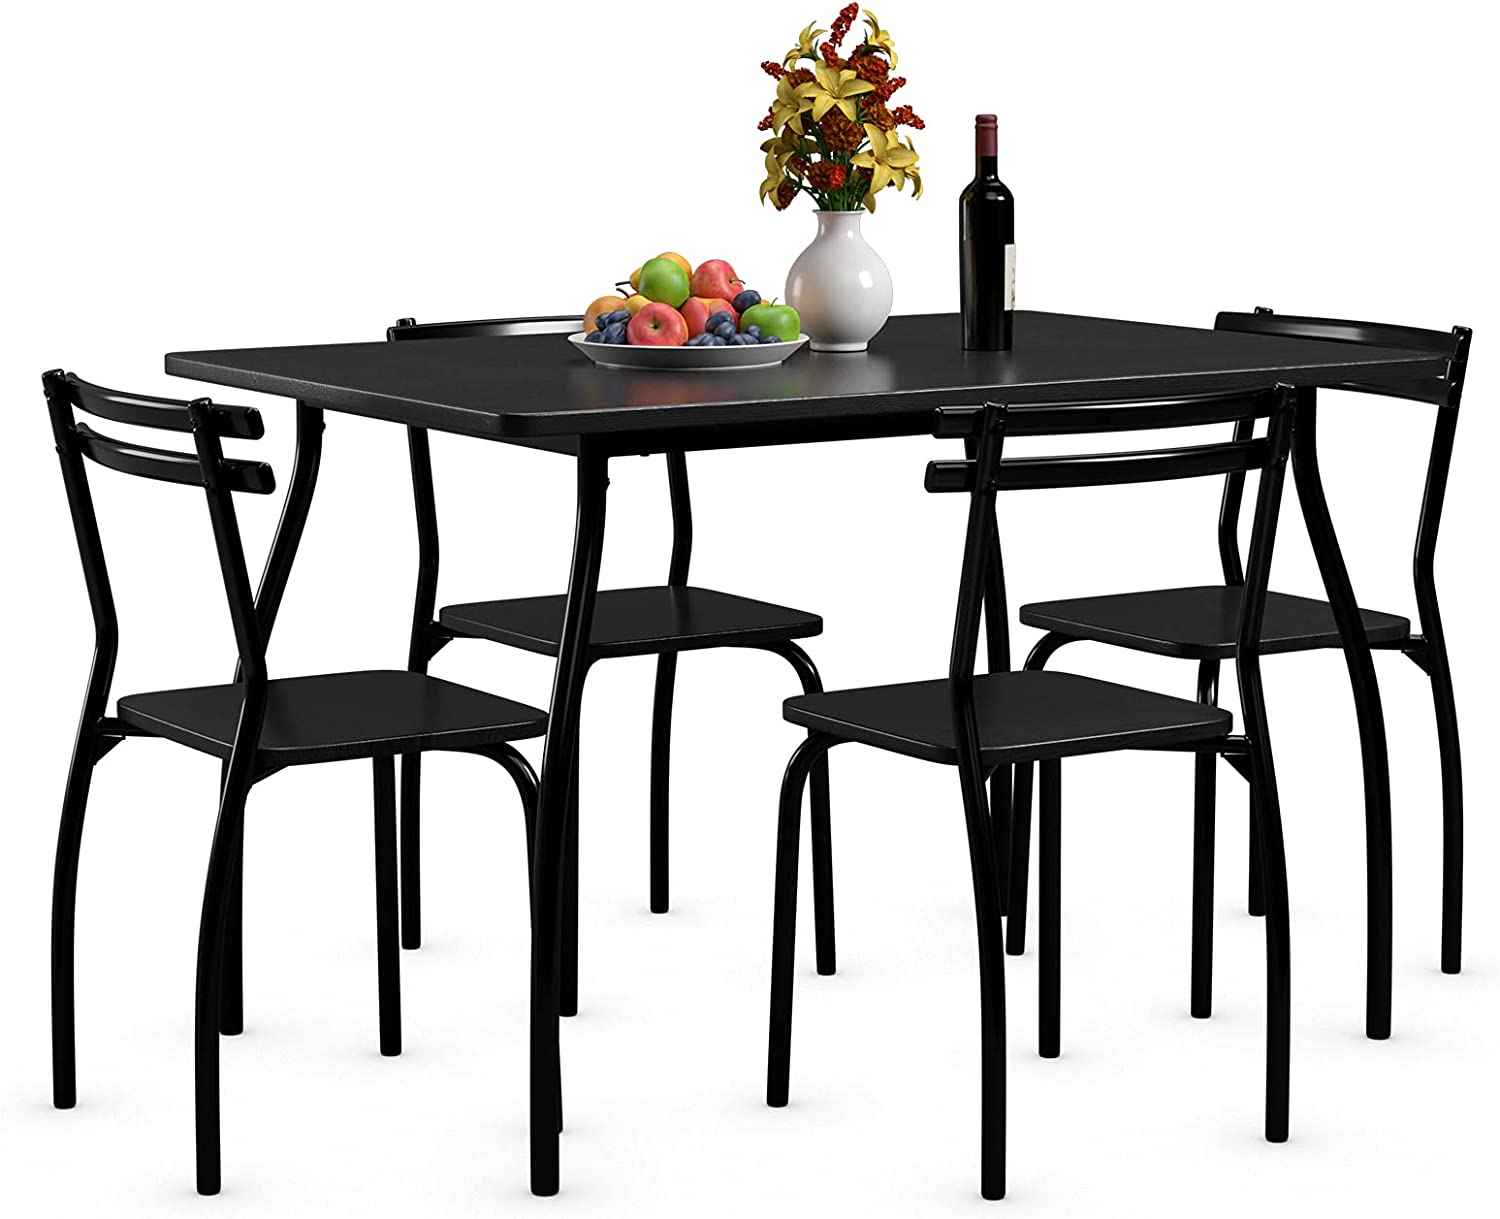 Giantex5PcsDiningTableSet for 4 Metal an Modern Max 80% OFF Manufacturer regenerated product